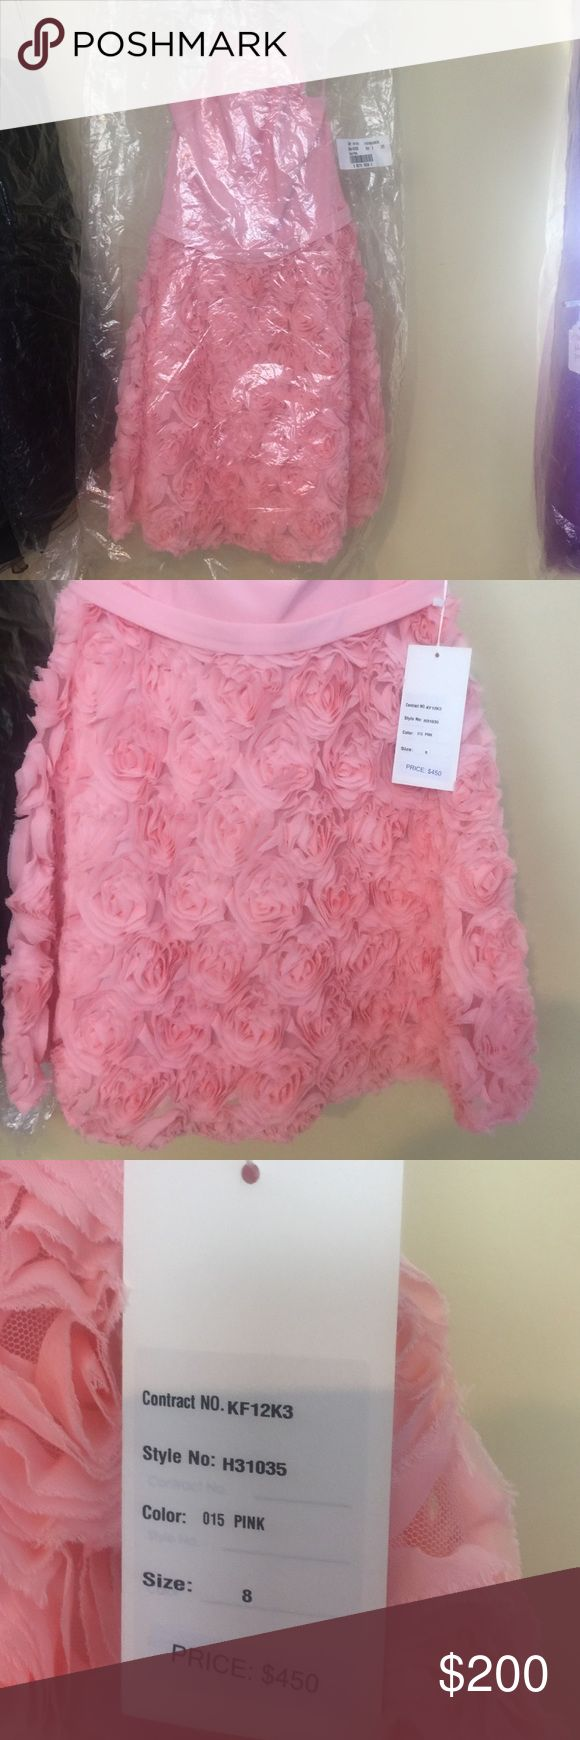 Brand new Beautiful Kathy Hilton  Dress!  👗👗 Short Pink new Kathy Hilton Dress. Four straps at top and flowered bottom. Beautiful dress. Kathy Hilton Dresses